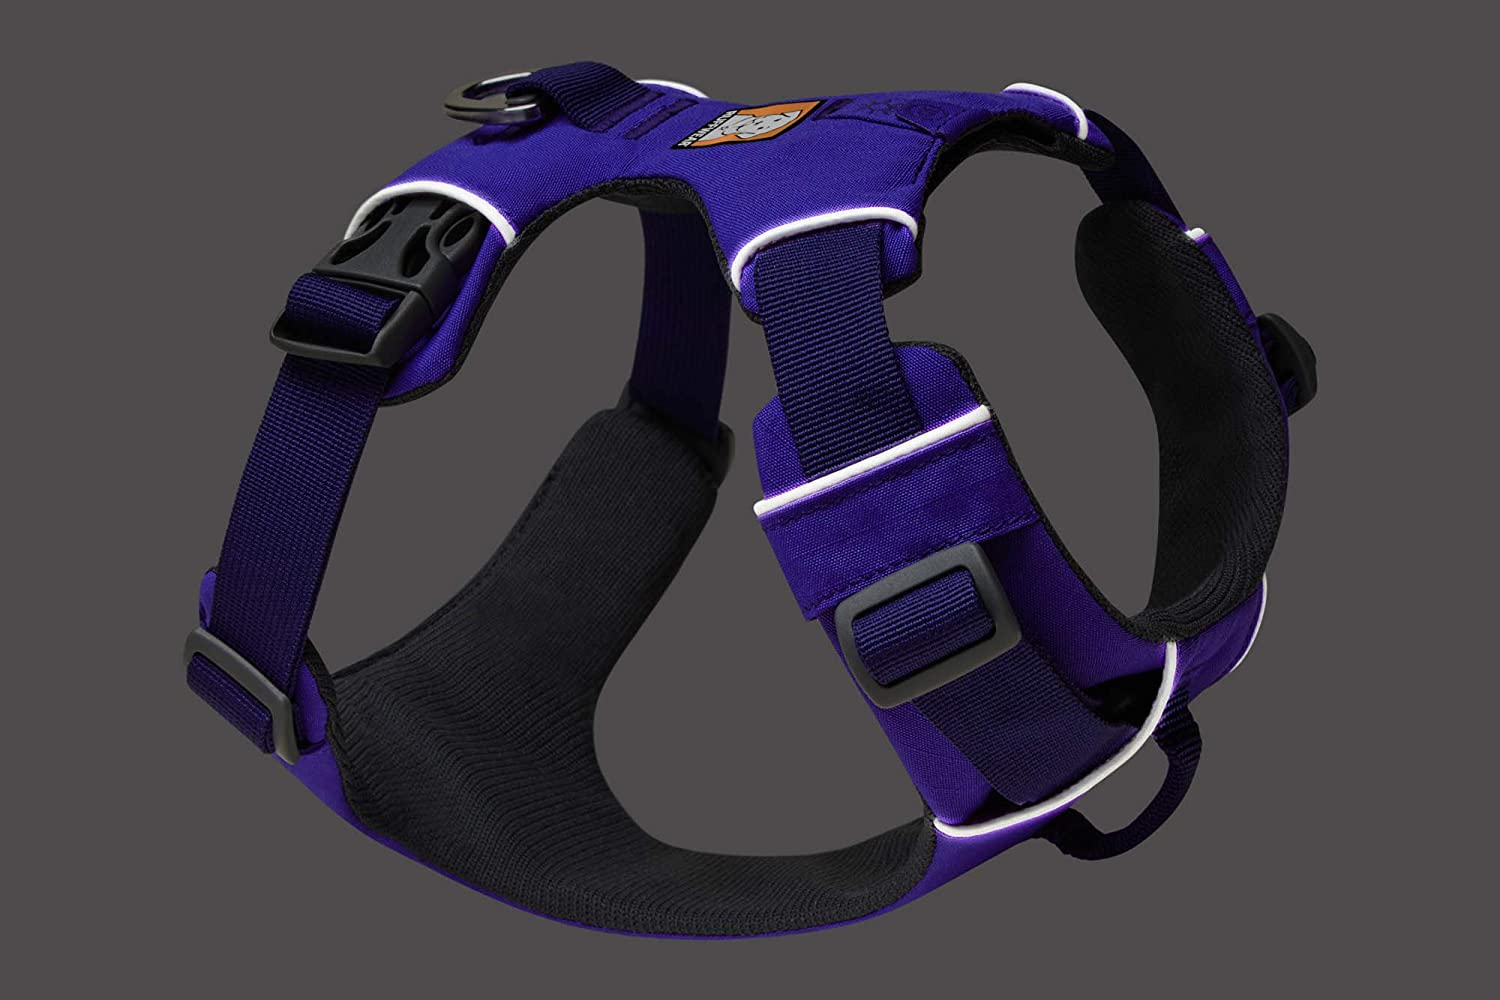 RUFFWEAR Front Range Dog Harness Reflective and Padded Harness for Training and Everyday